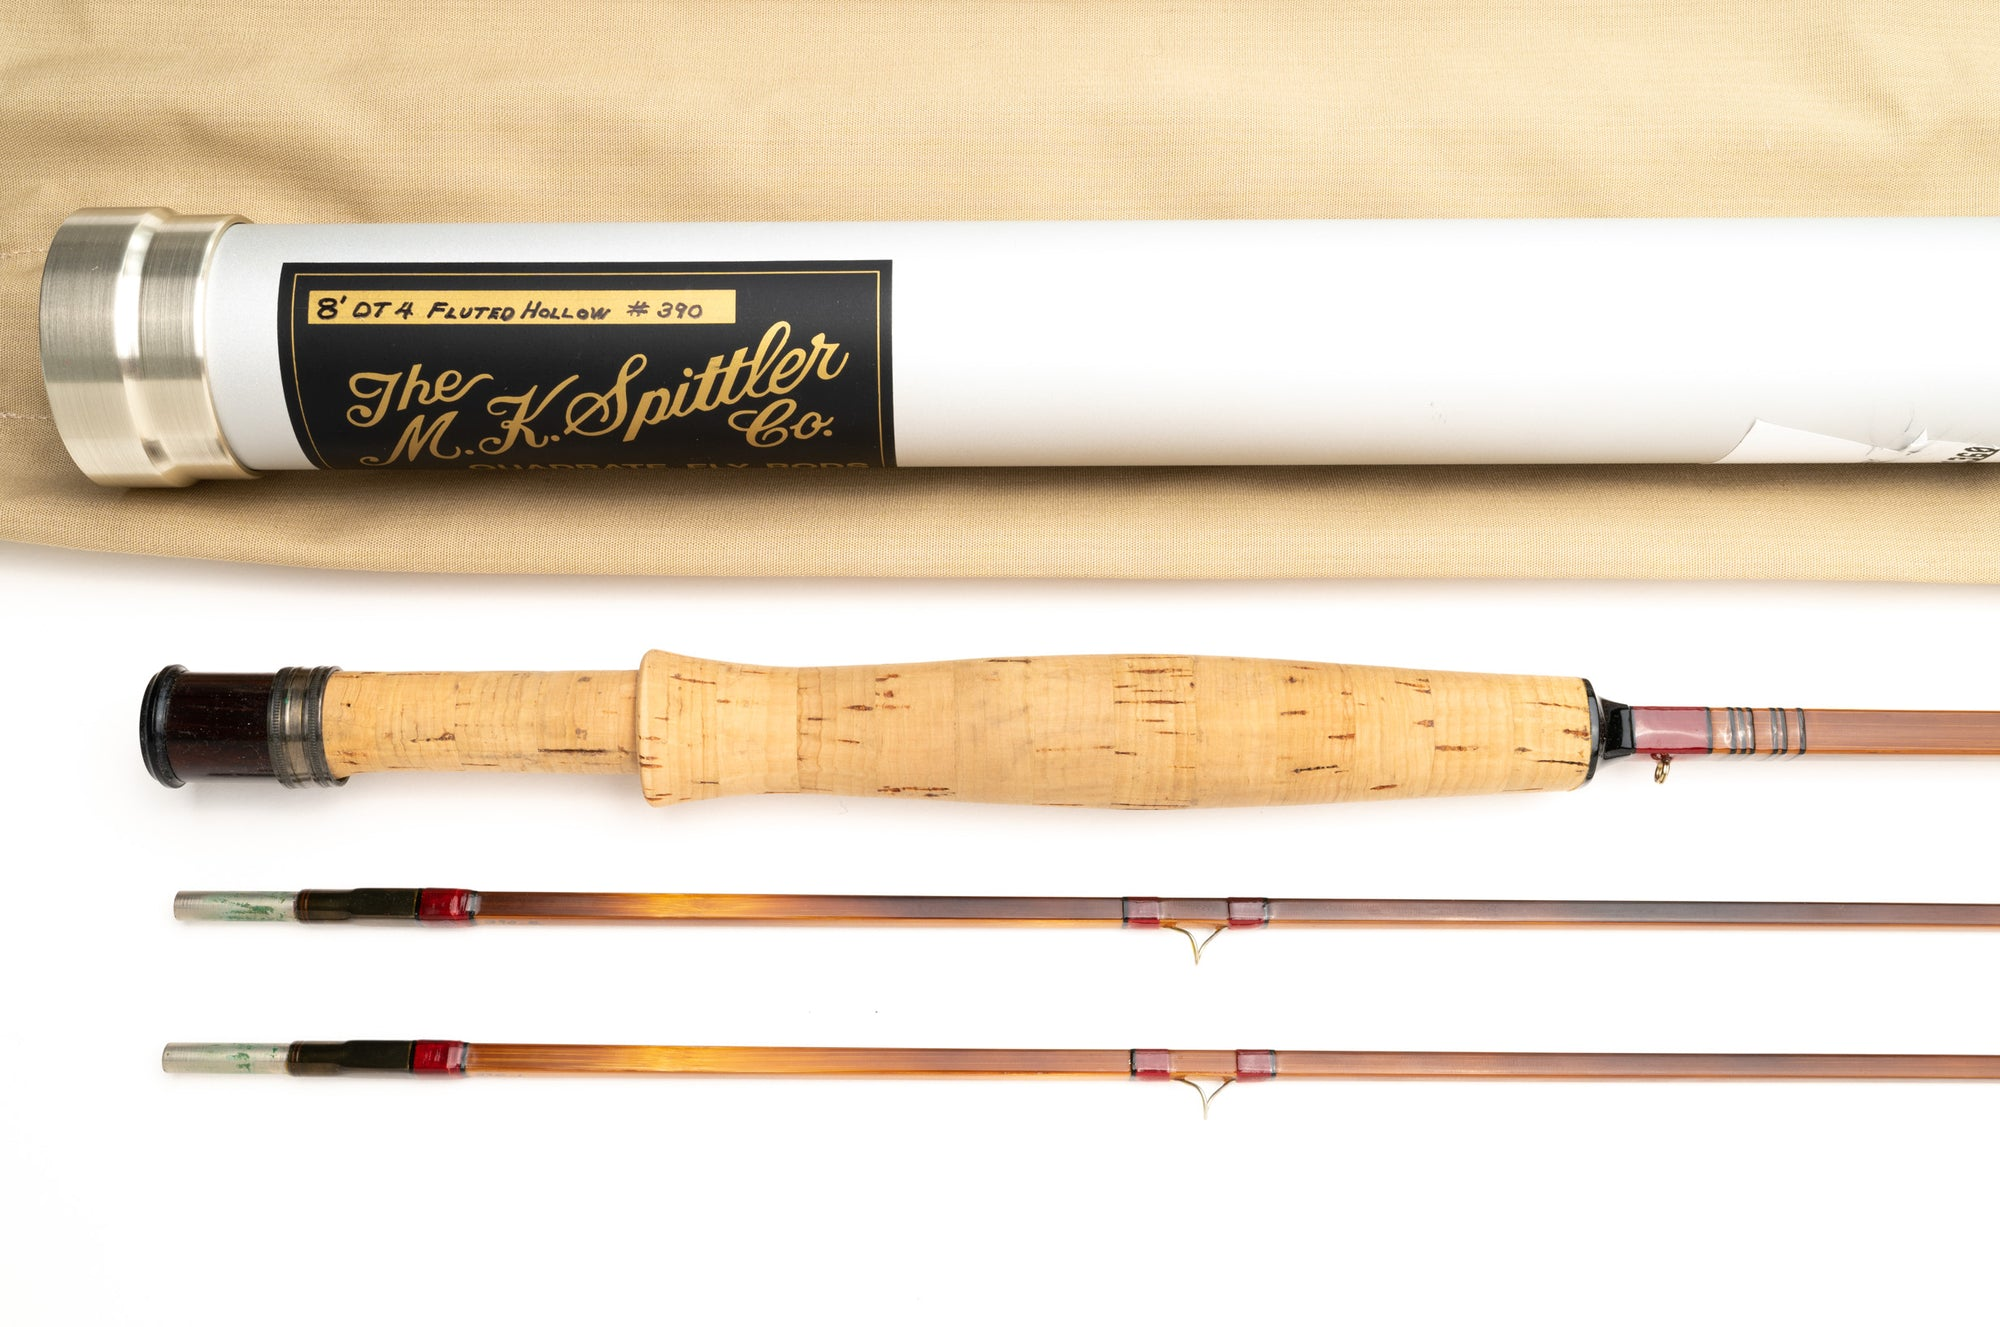 Mike Spittler Fluted Hollow Fly Rod 8' 2/2 #4